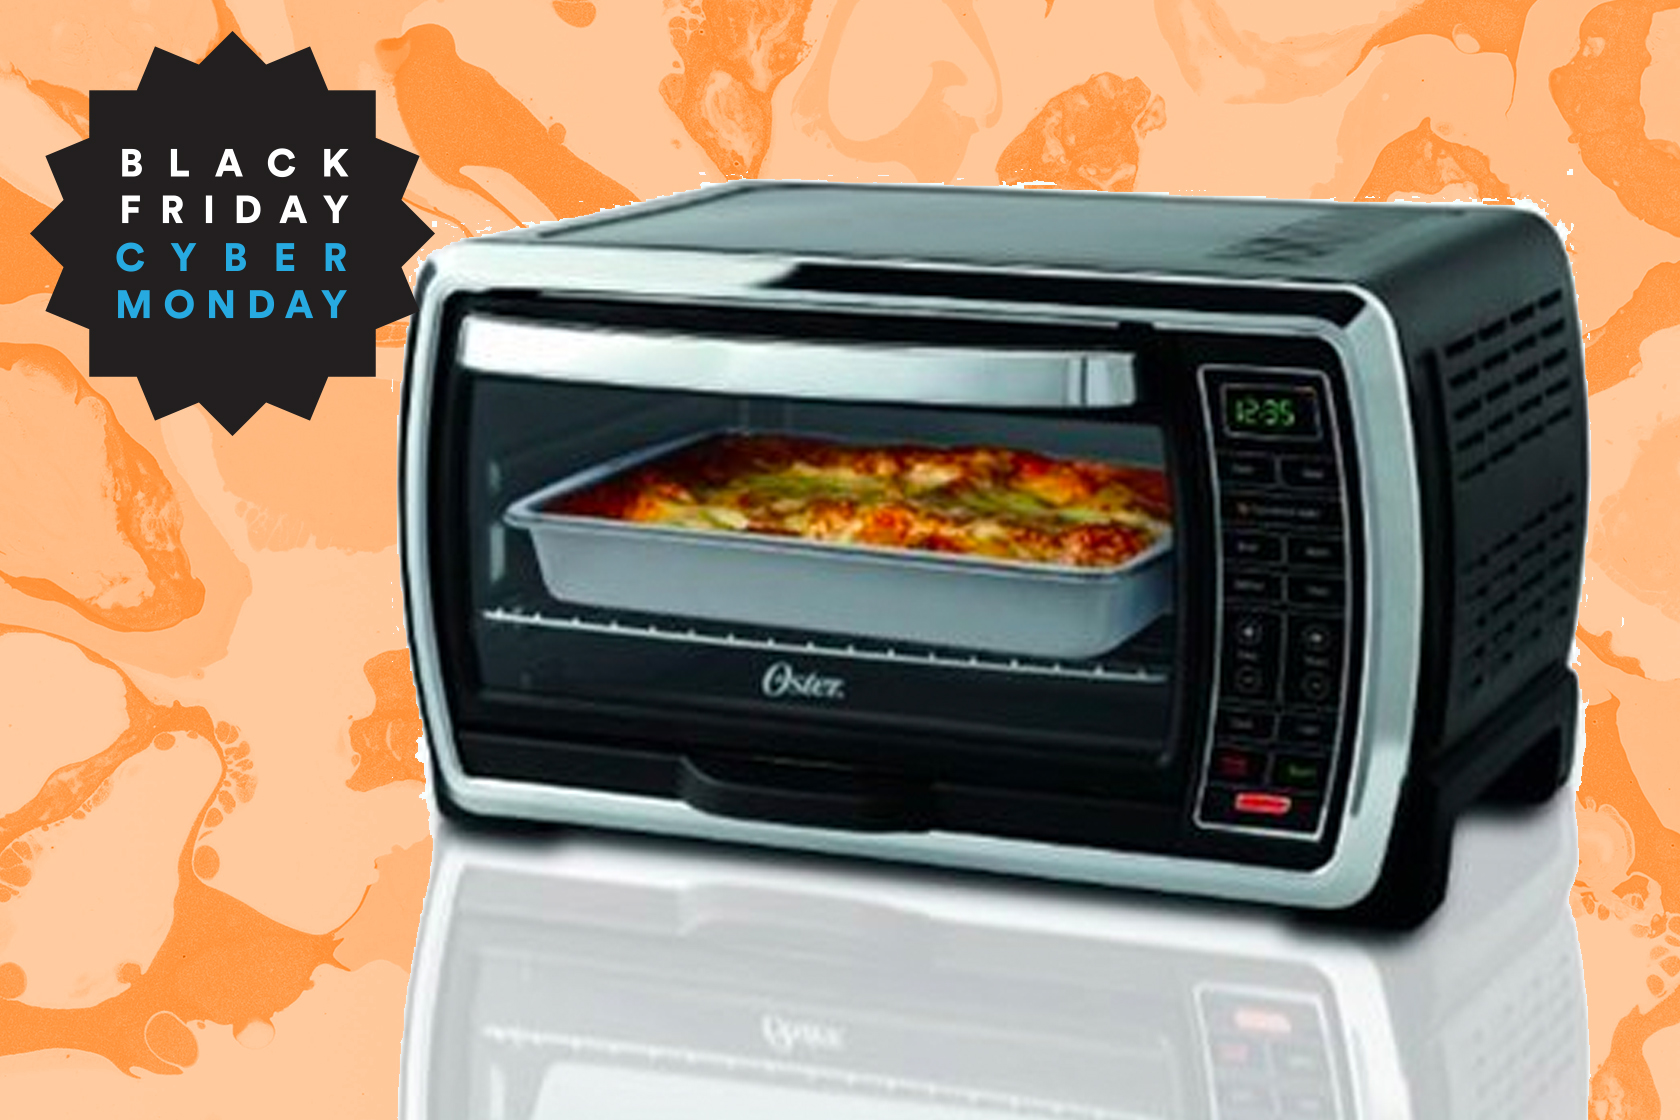 Digital toaster oven on sale, will revolutionize your life.